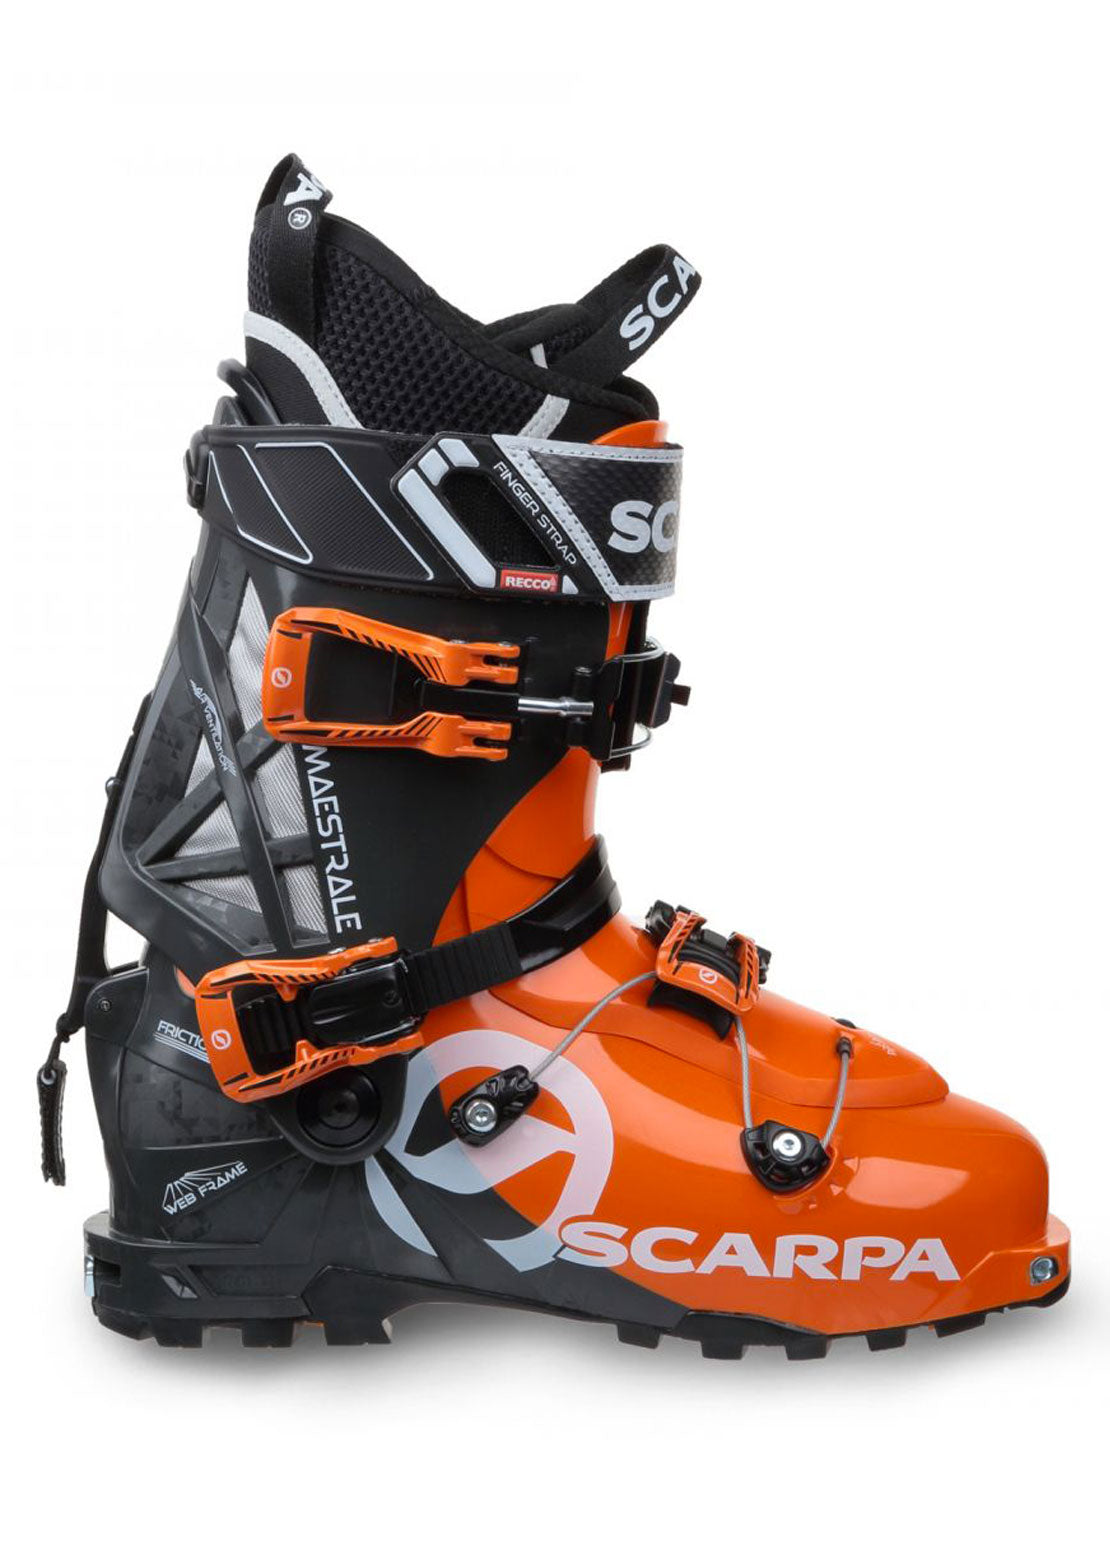 Scarpa Men's Maestrale Ski Touring Boot Orange/Anthracite